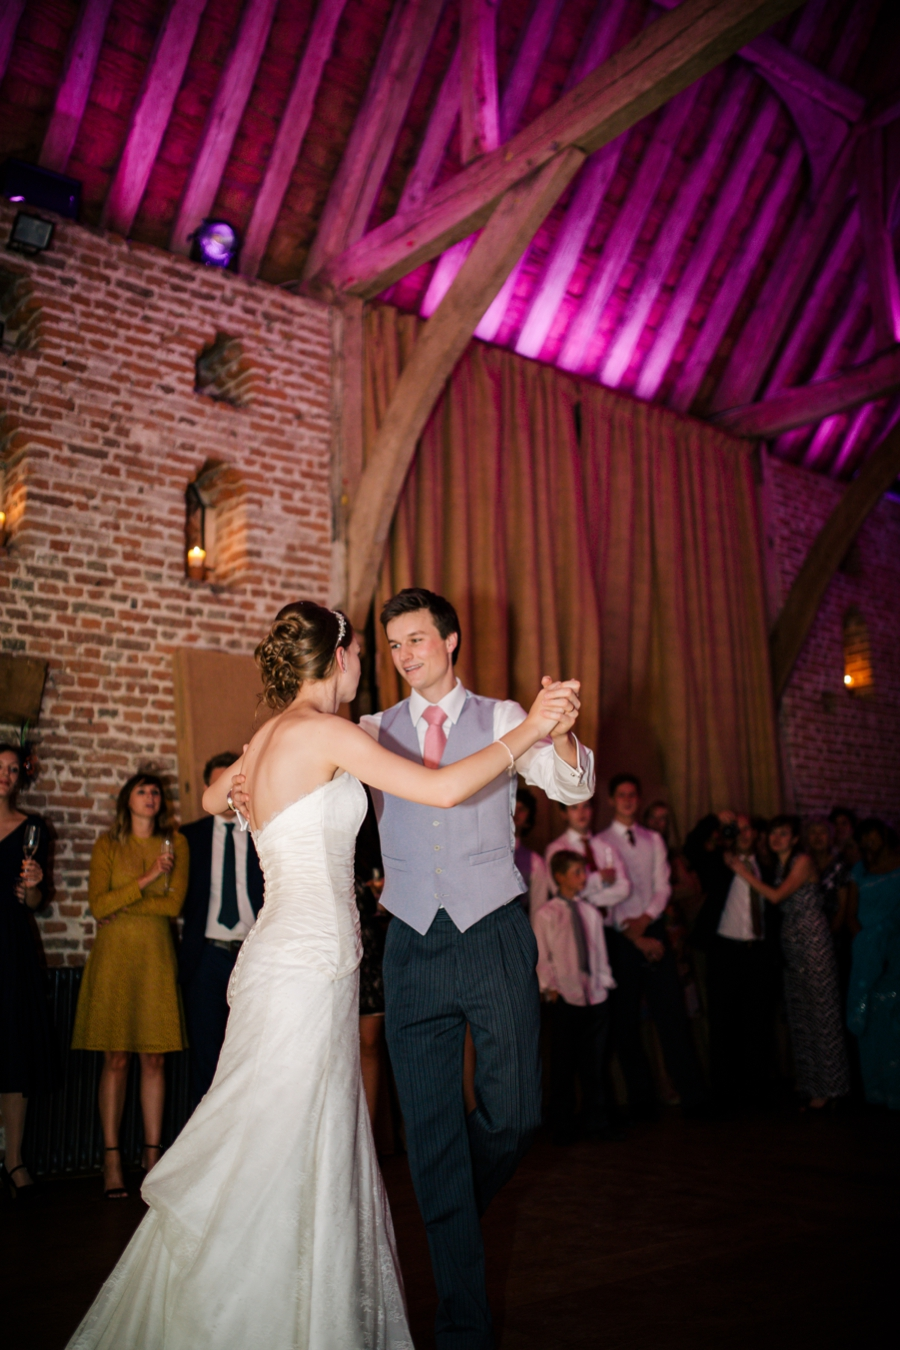 Cheshire Wedding Photographer Hayles Hall Barn Wedding Jess and Rob_0057.jpg